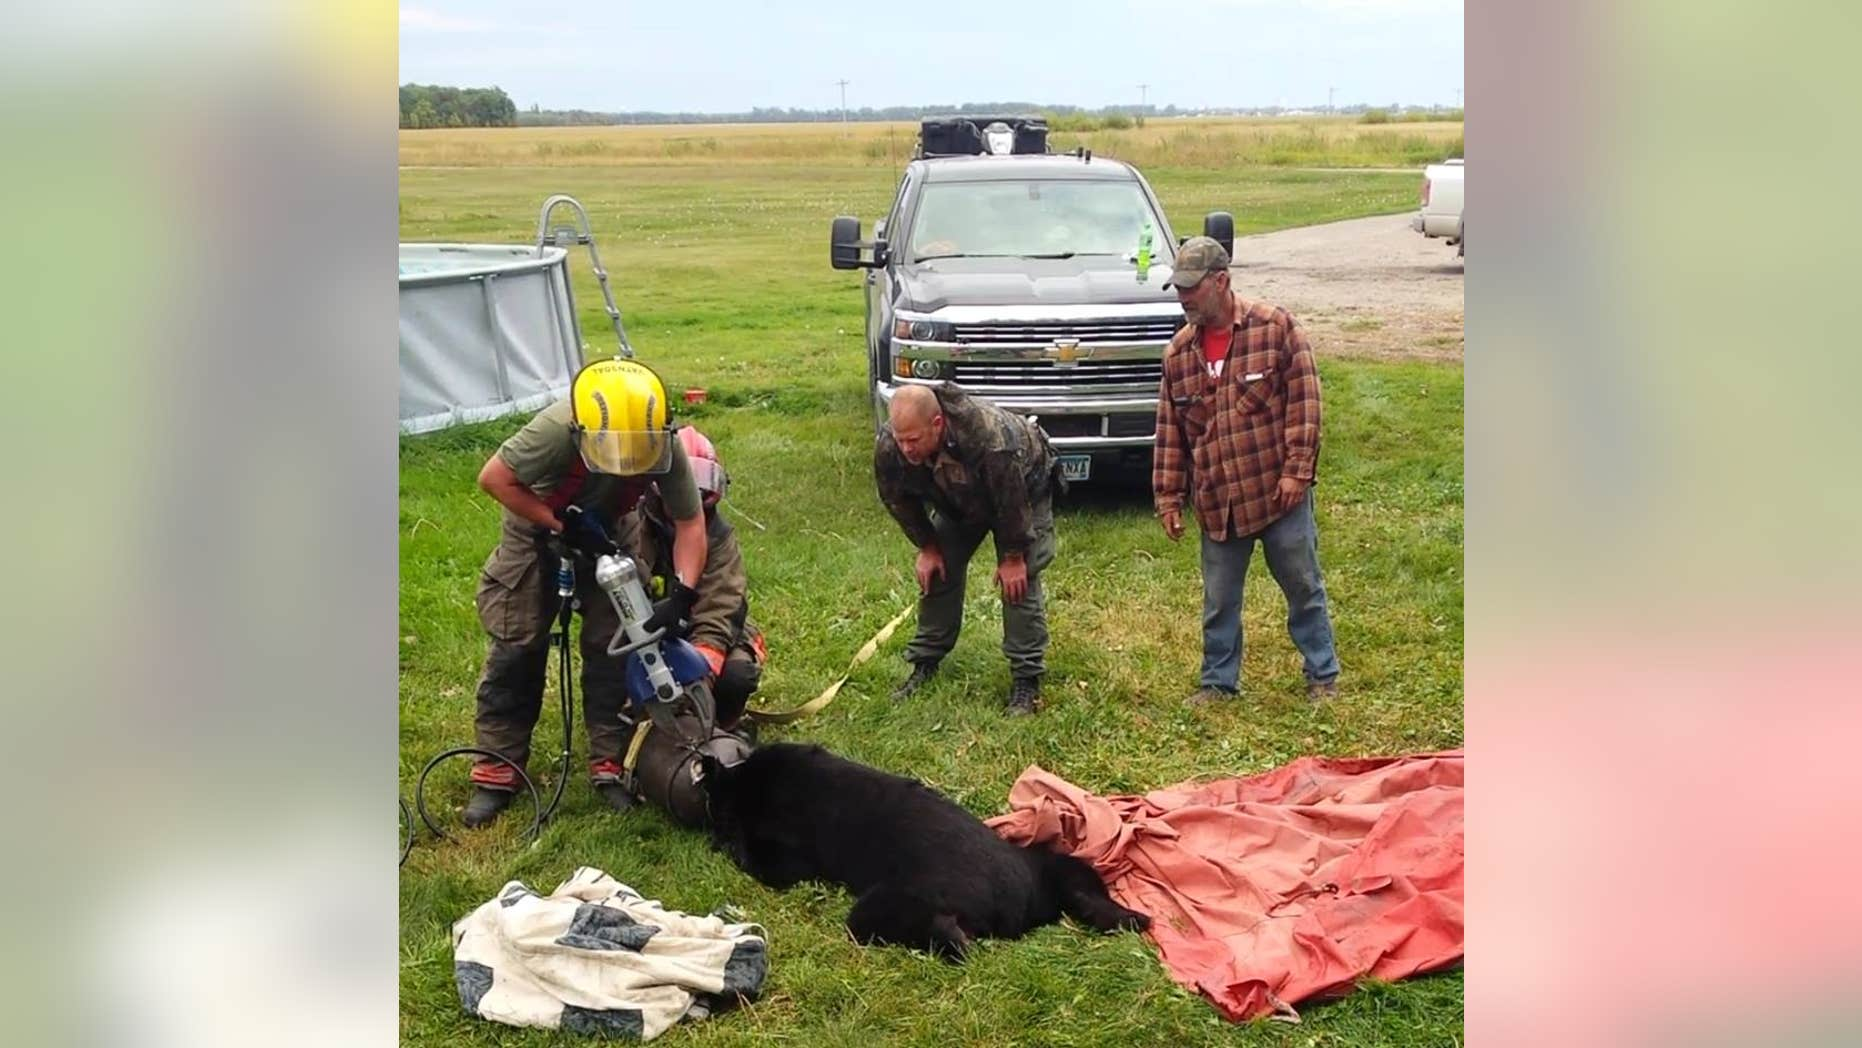 Firefighters in northern Minnesota recently came to the rescue of a black bear after he got his head stuck in a 10-gallon milk jug.